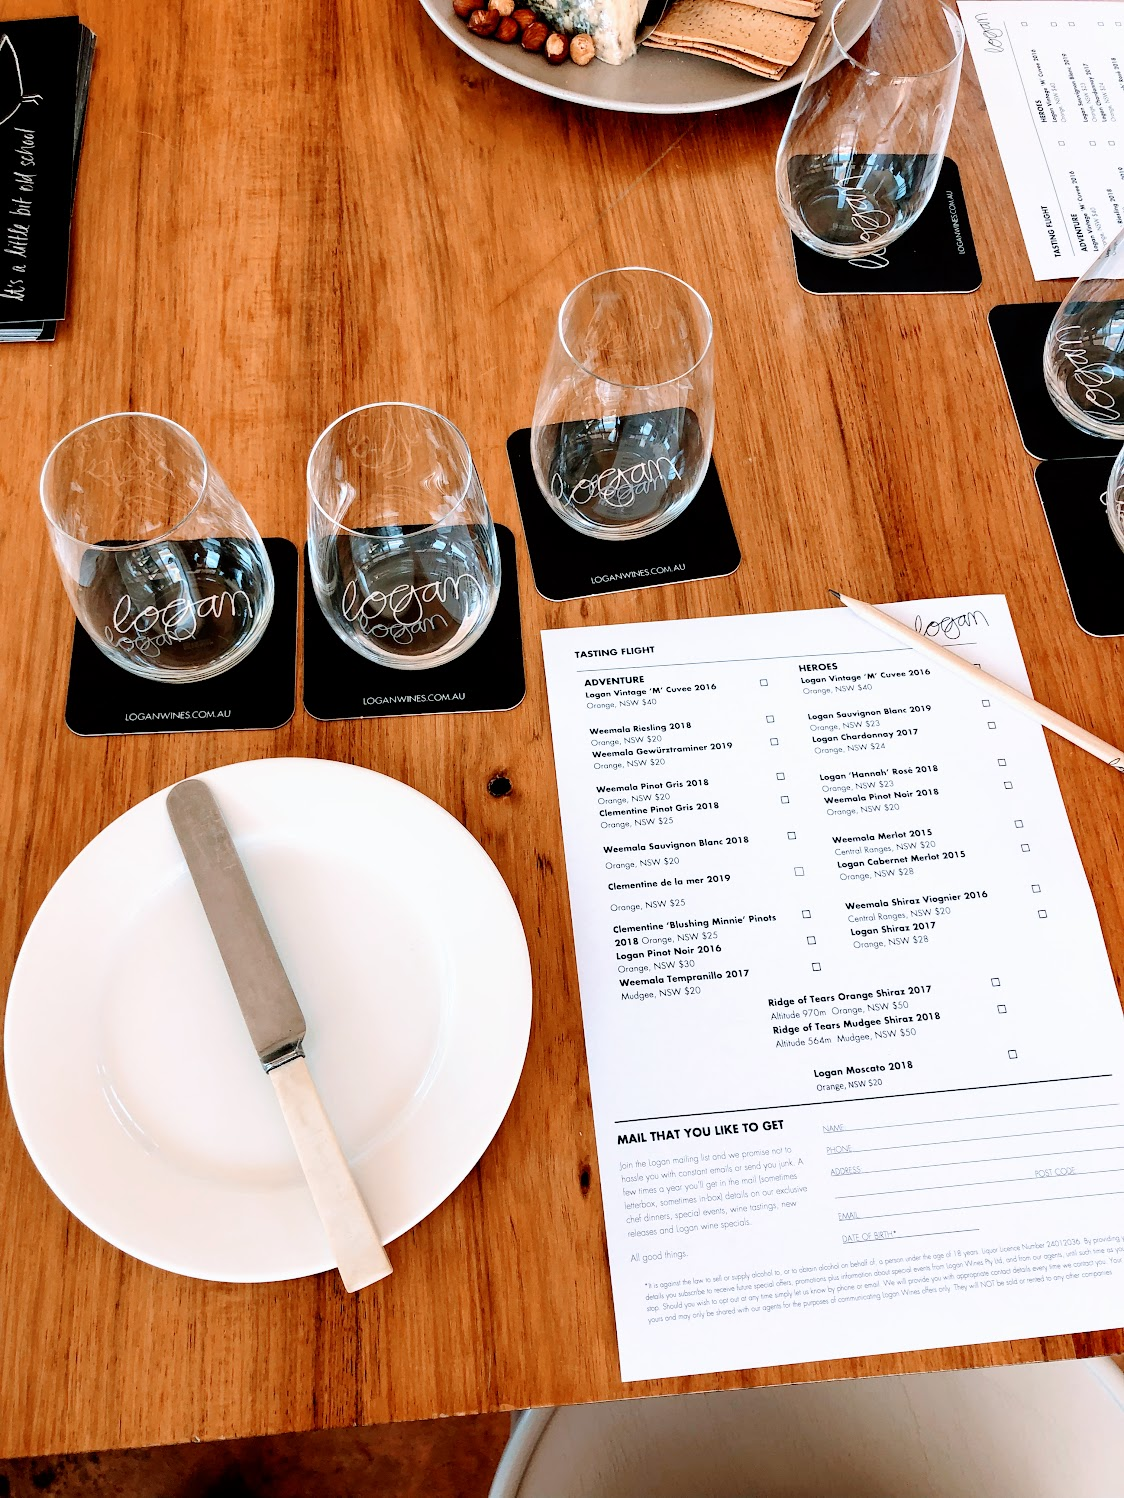 Logan wine flight with glasses and menu